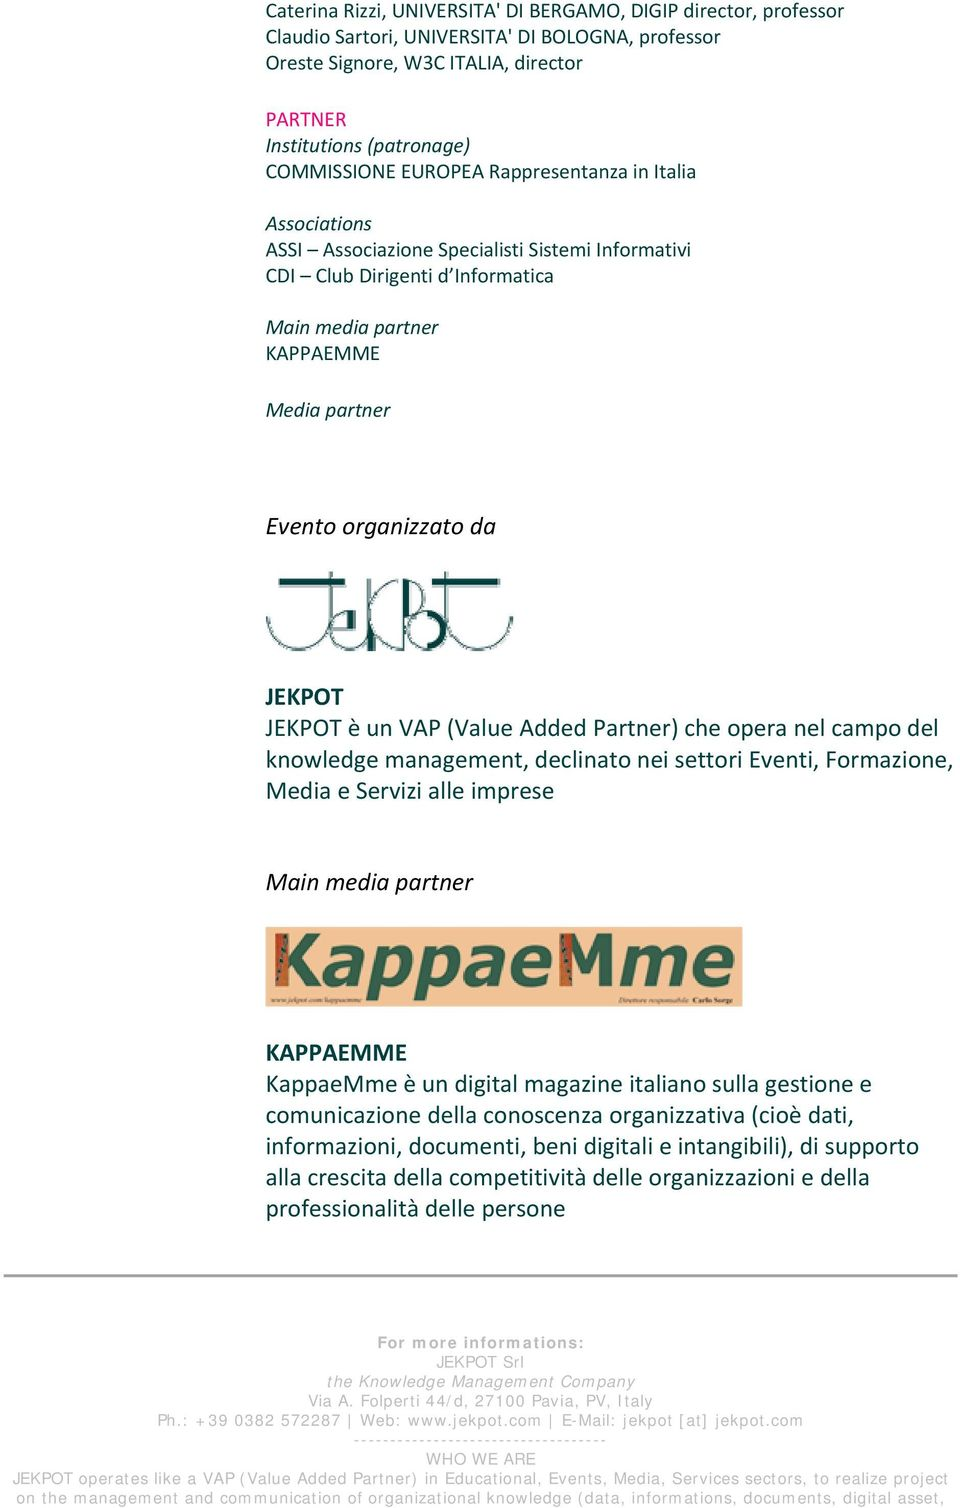 JEKPOT JEKPOT è un VAP (Value Added Partner) che opera nel campo del knowledge management, declinato nei settori Eventi, Formazione, Media e Servizi alle imprese Main media partner KAPPAEMME